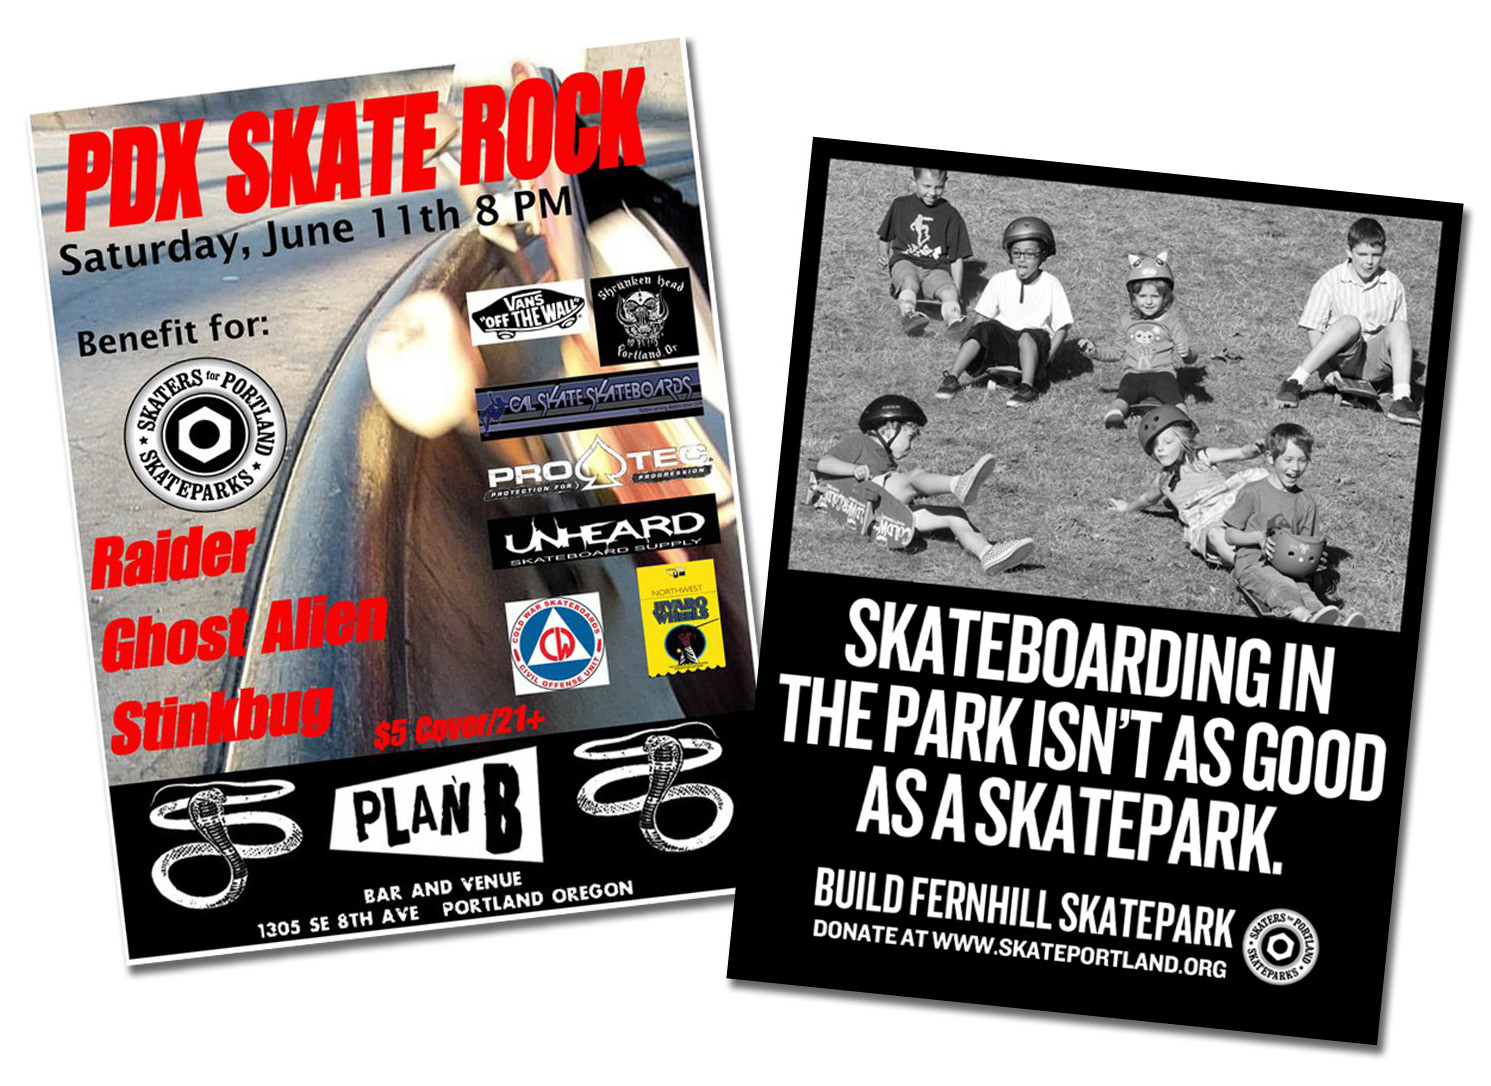 Promotional flyers for a Portland Skate Rock Show Benefit at Plan B Venue and Fernhill Skatepark Fundraiser at Extracto Roasters